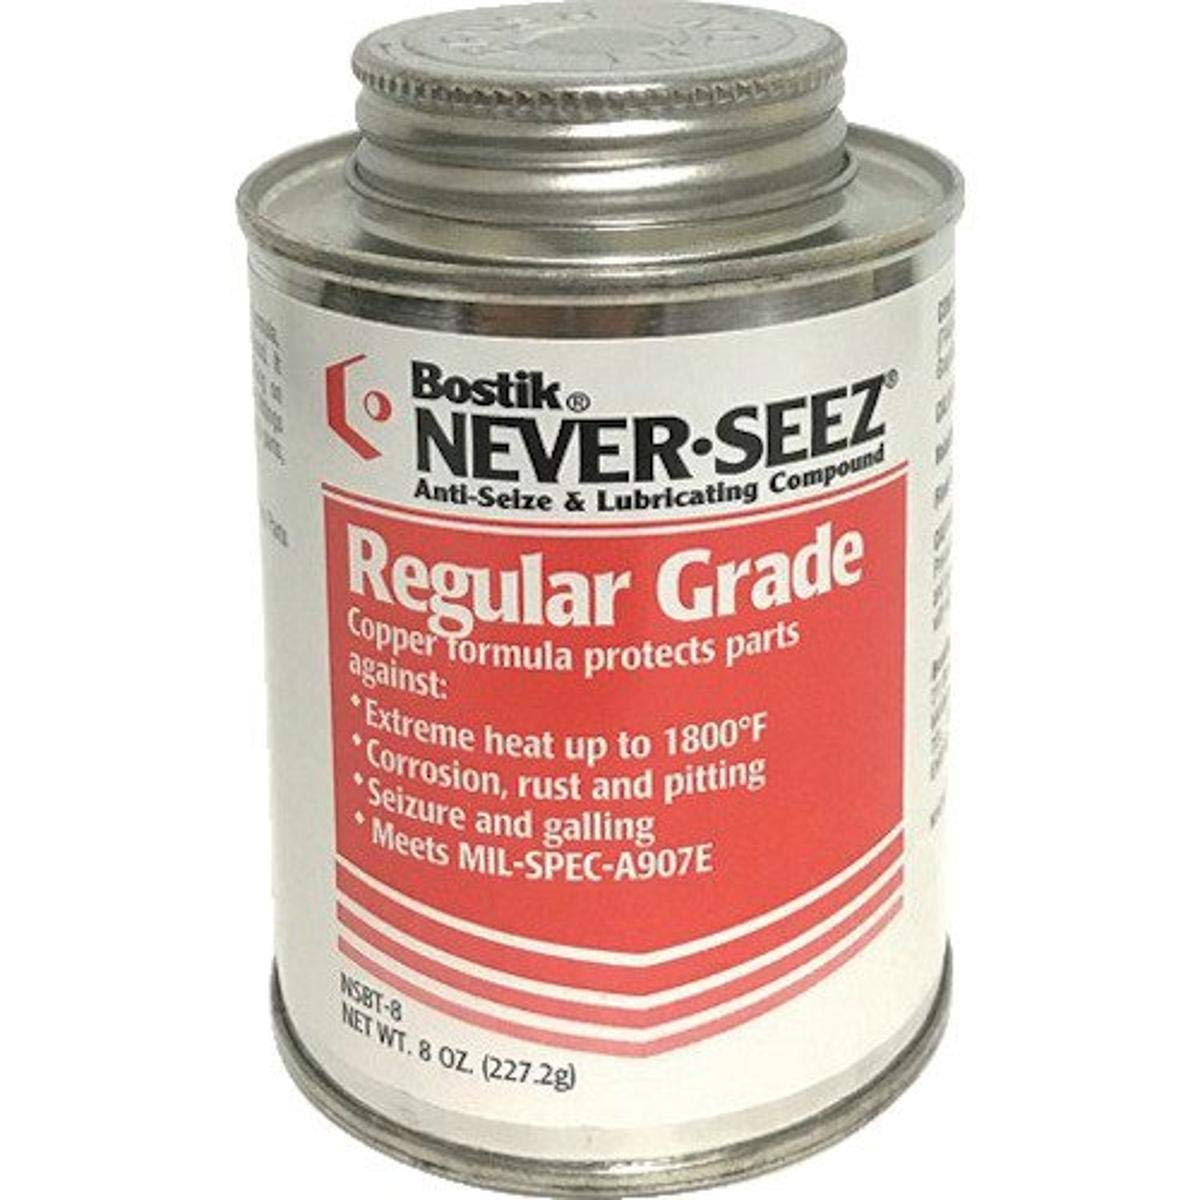 Never-Seez NSBT-8 Silver Gray Regular Grade Anti-Seize Compound, 8 fl. oz. Brush Top Can